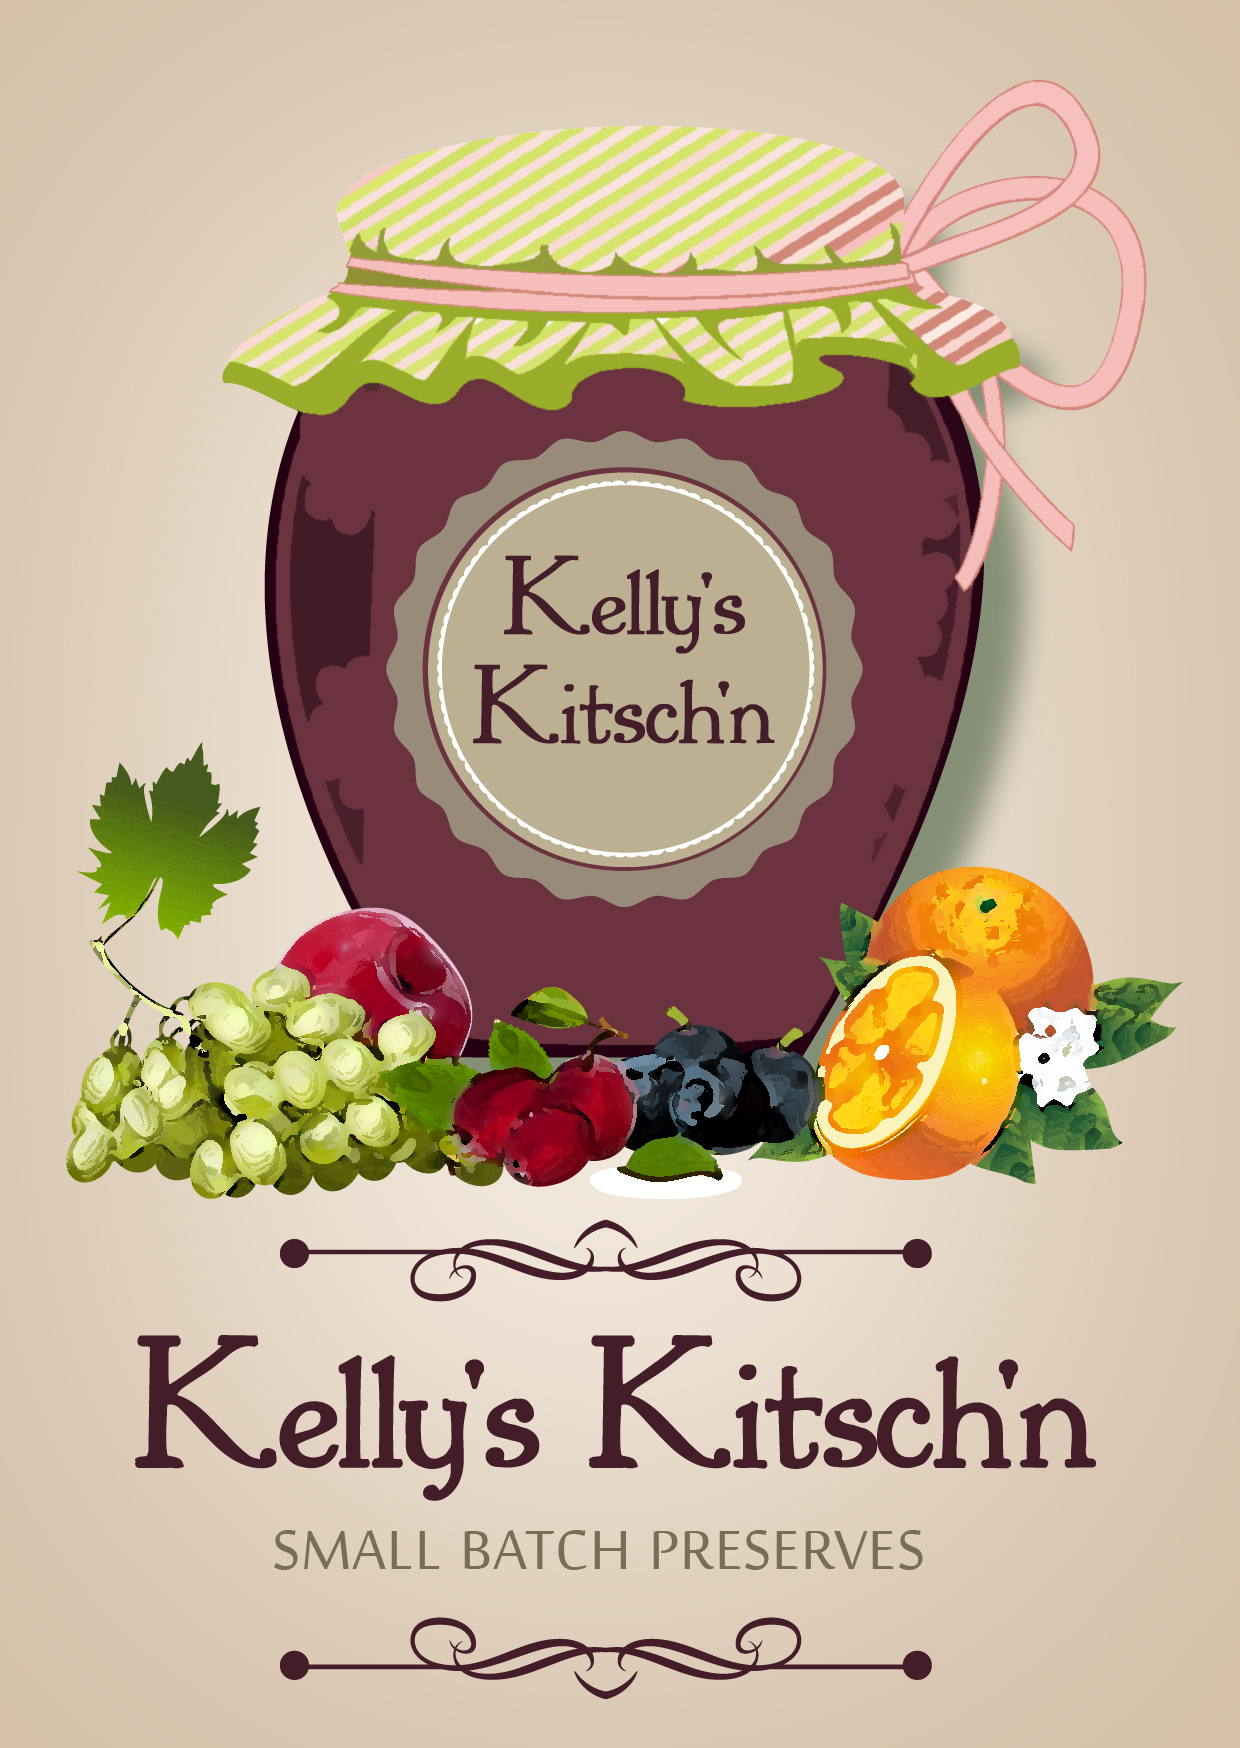 Logo Design by Private User - Entry No. 72 in the Logo Design Contest Unique Logo Design Wanted for Kelly's Kitsch'n.